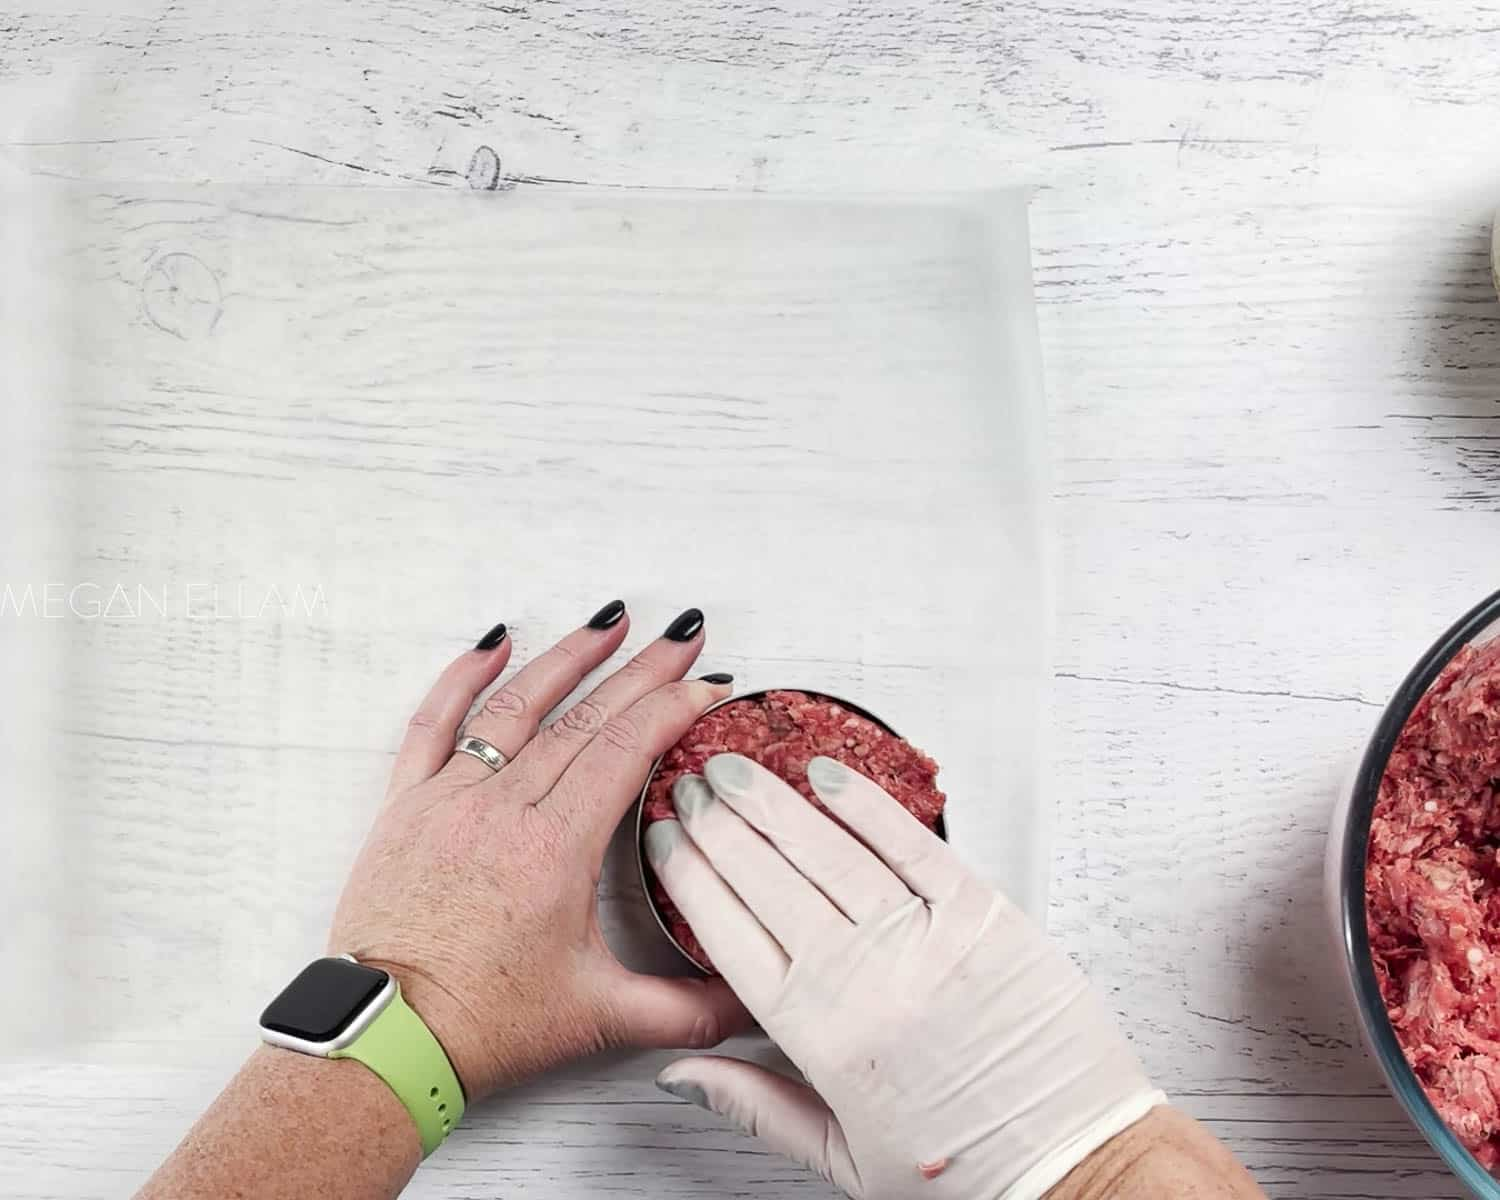 A gloved hand shaping a burger.